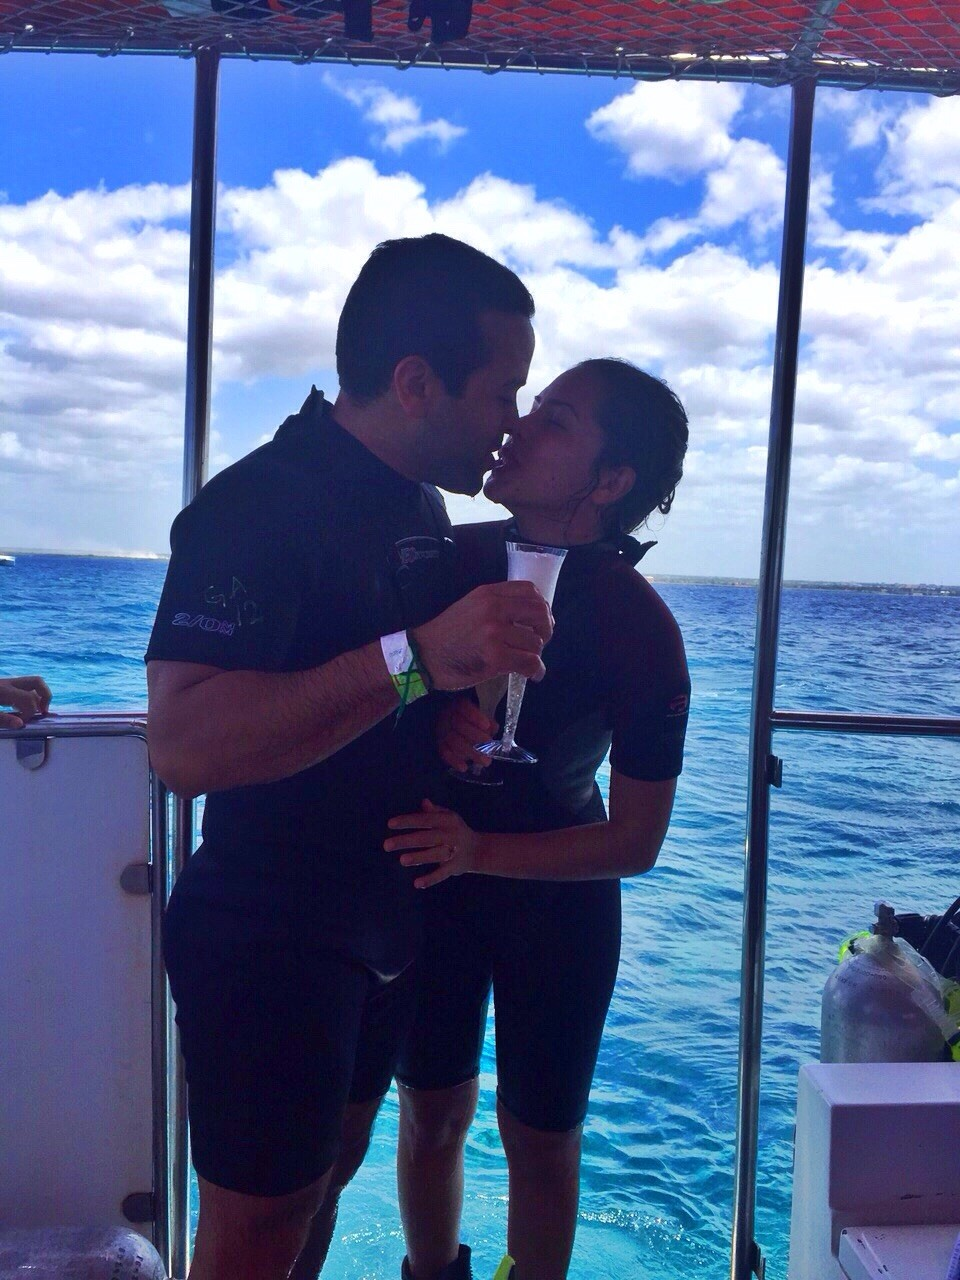 Image 1 of Patricia and Enmanuel's Scuba Diving Proposal